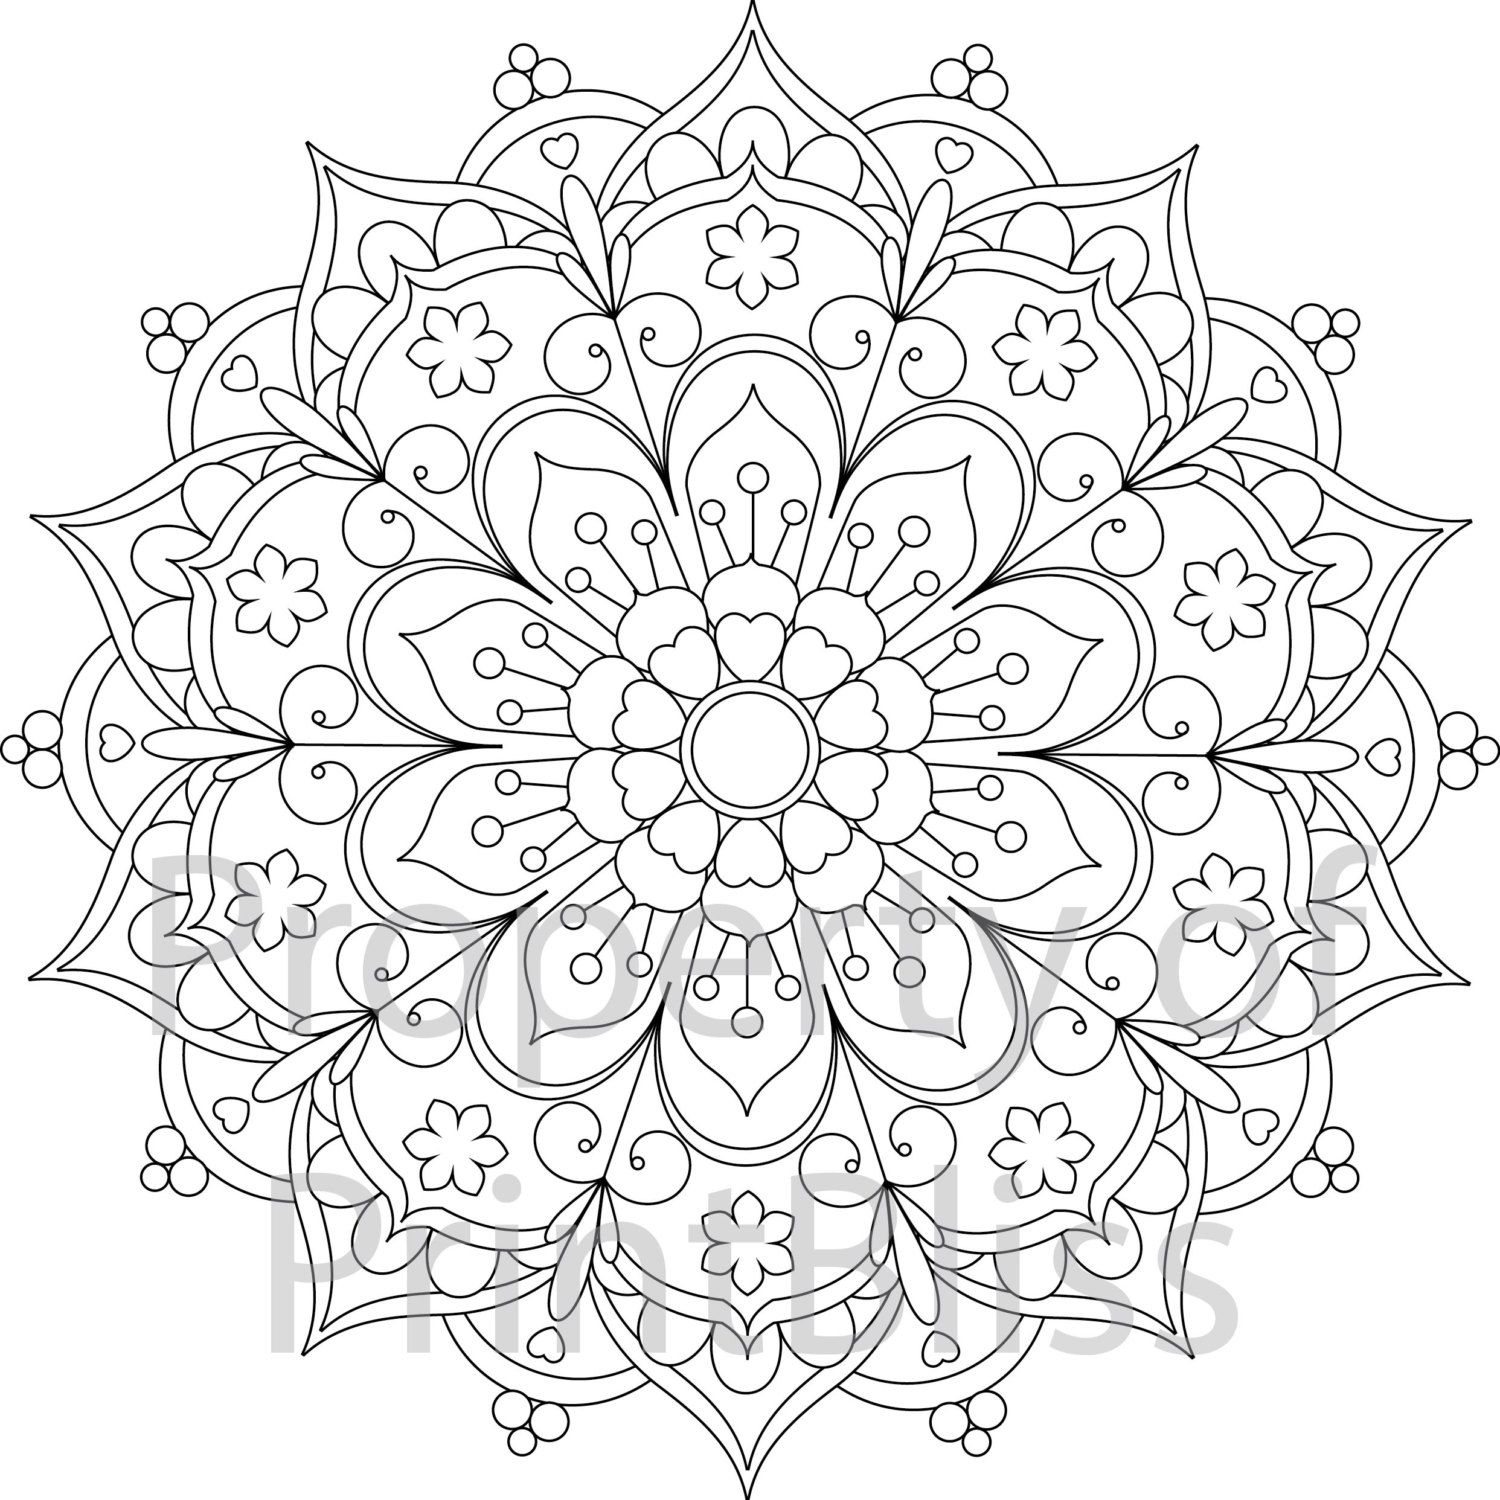 free printable coloring pages mandala designs | 25. Flower Mandala printable coloring page. by PrintBliss ...